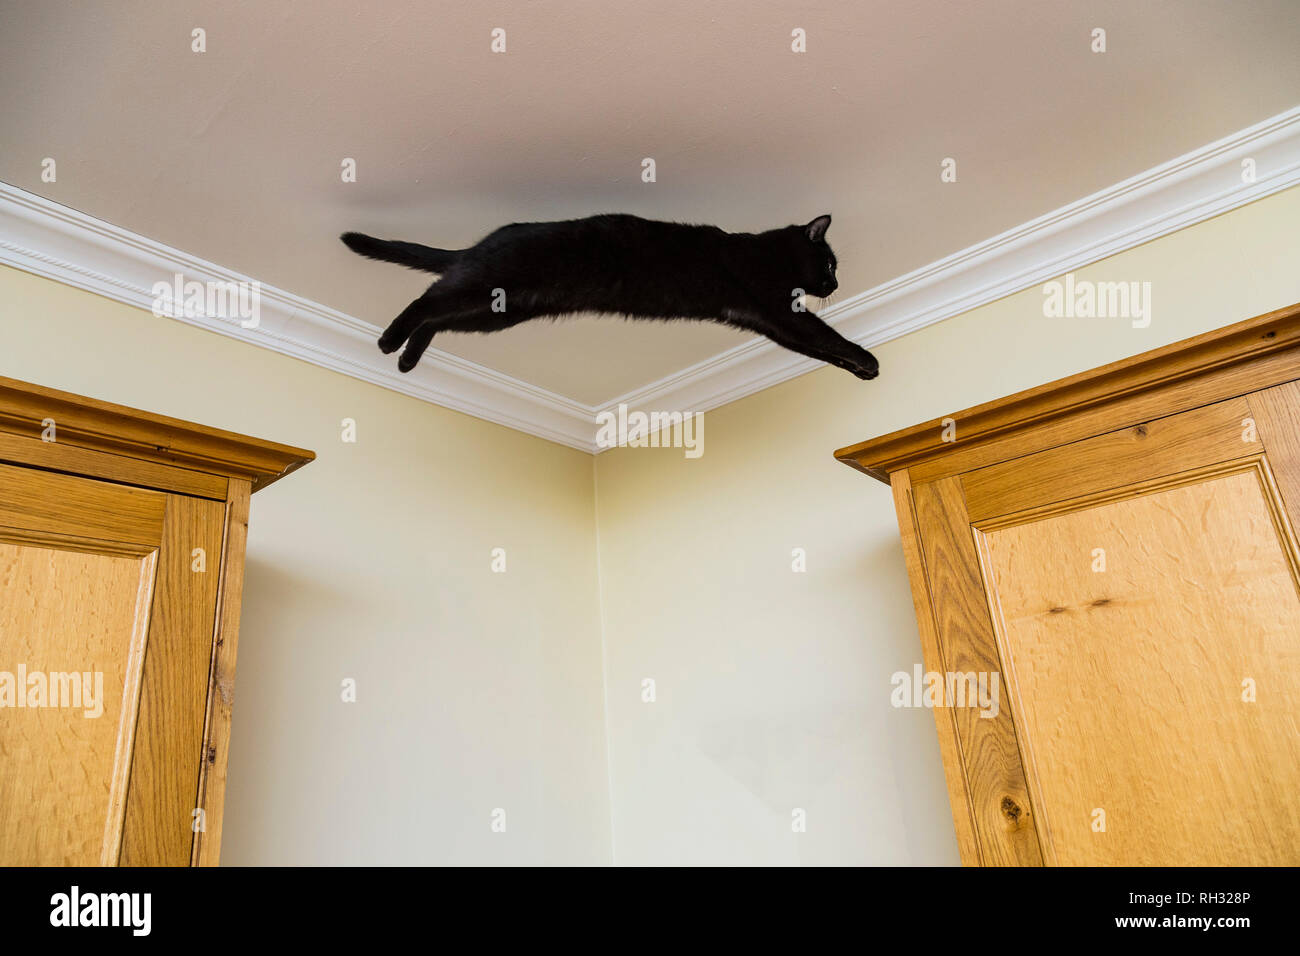 A young black cat leaps between two wooden cupboards. - Stock Image